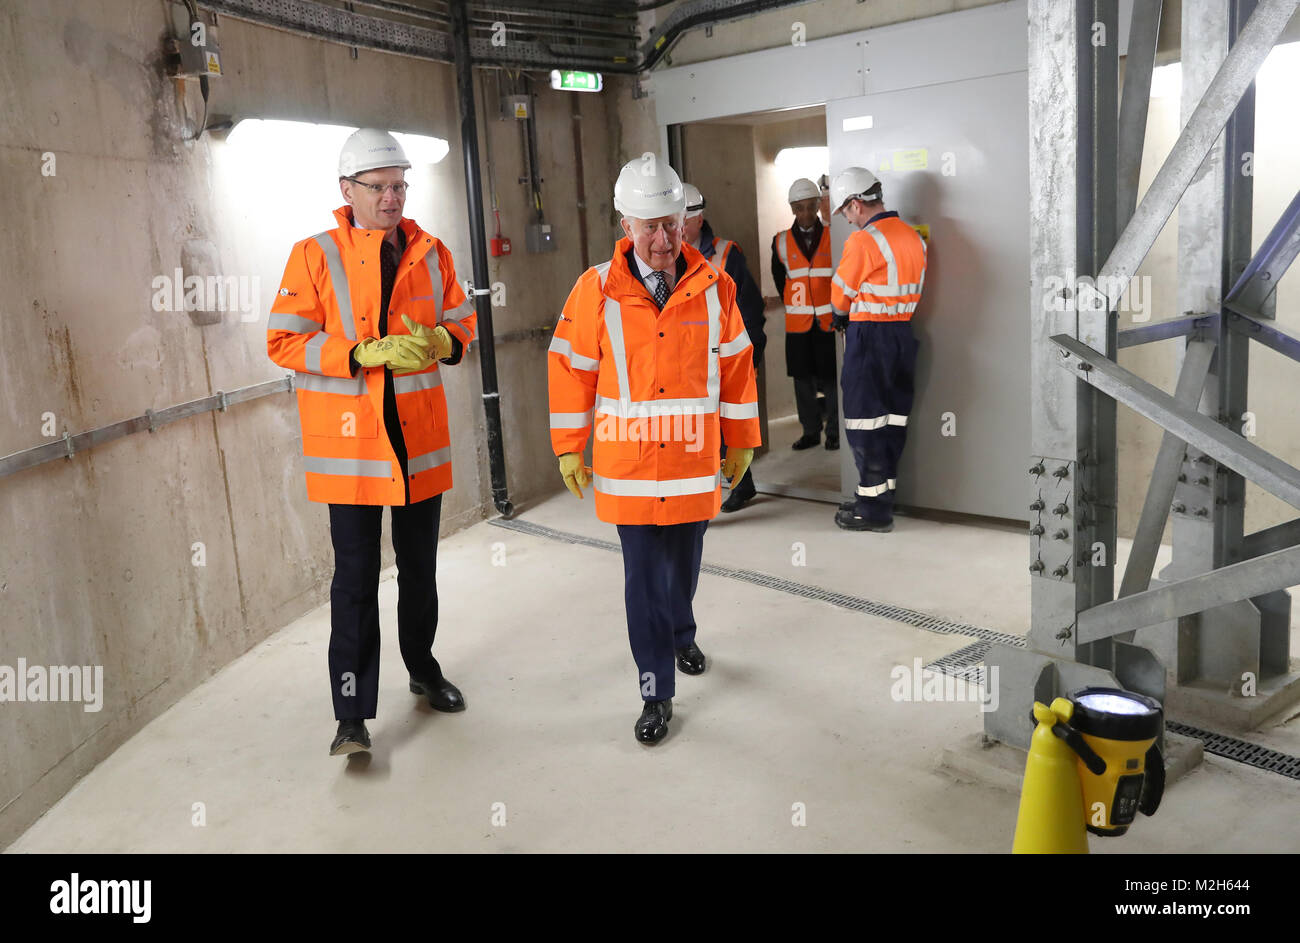 The Prince of Wales (centre) during the official opening of The National Grid's London Power Tunnels project, - Stock Image